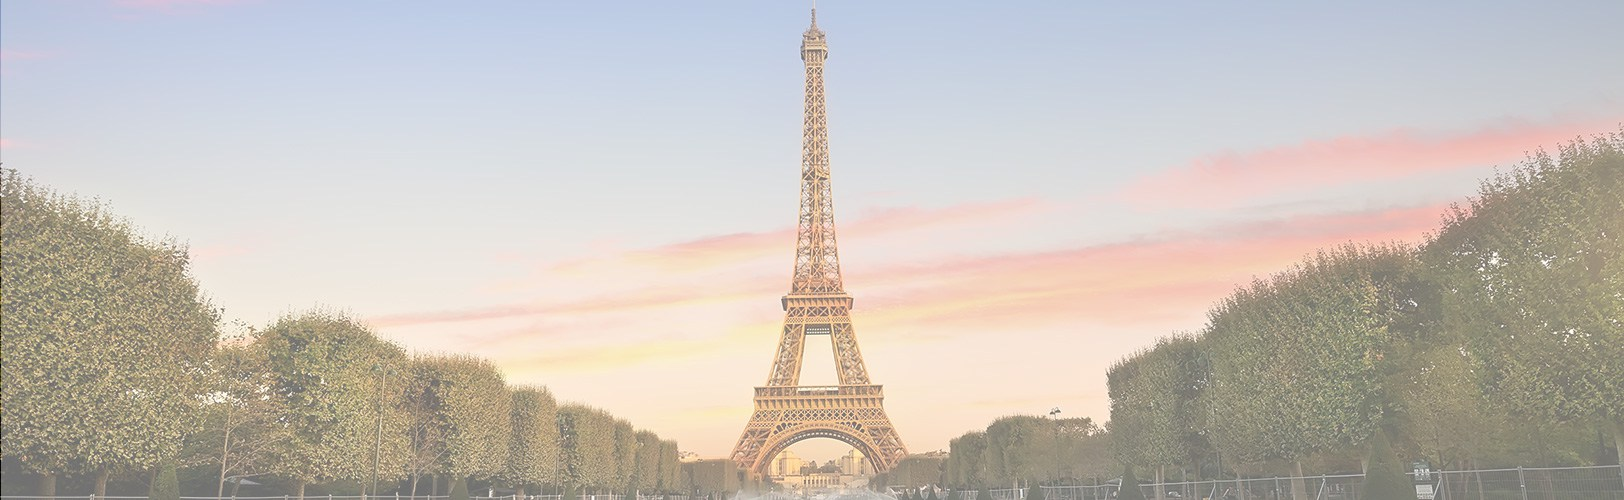 Learn French In Dubai French Starter Courses For Traveling